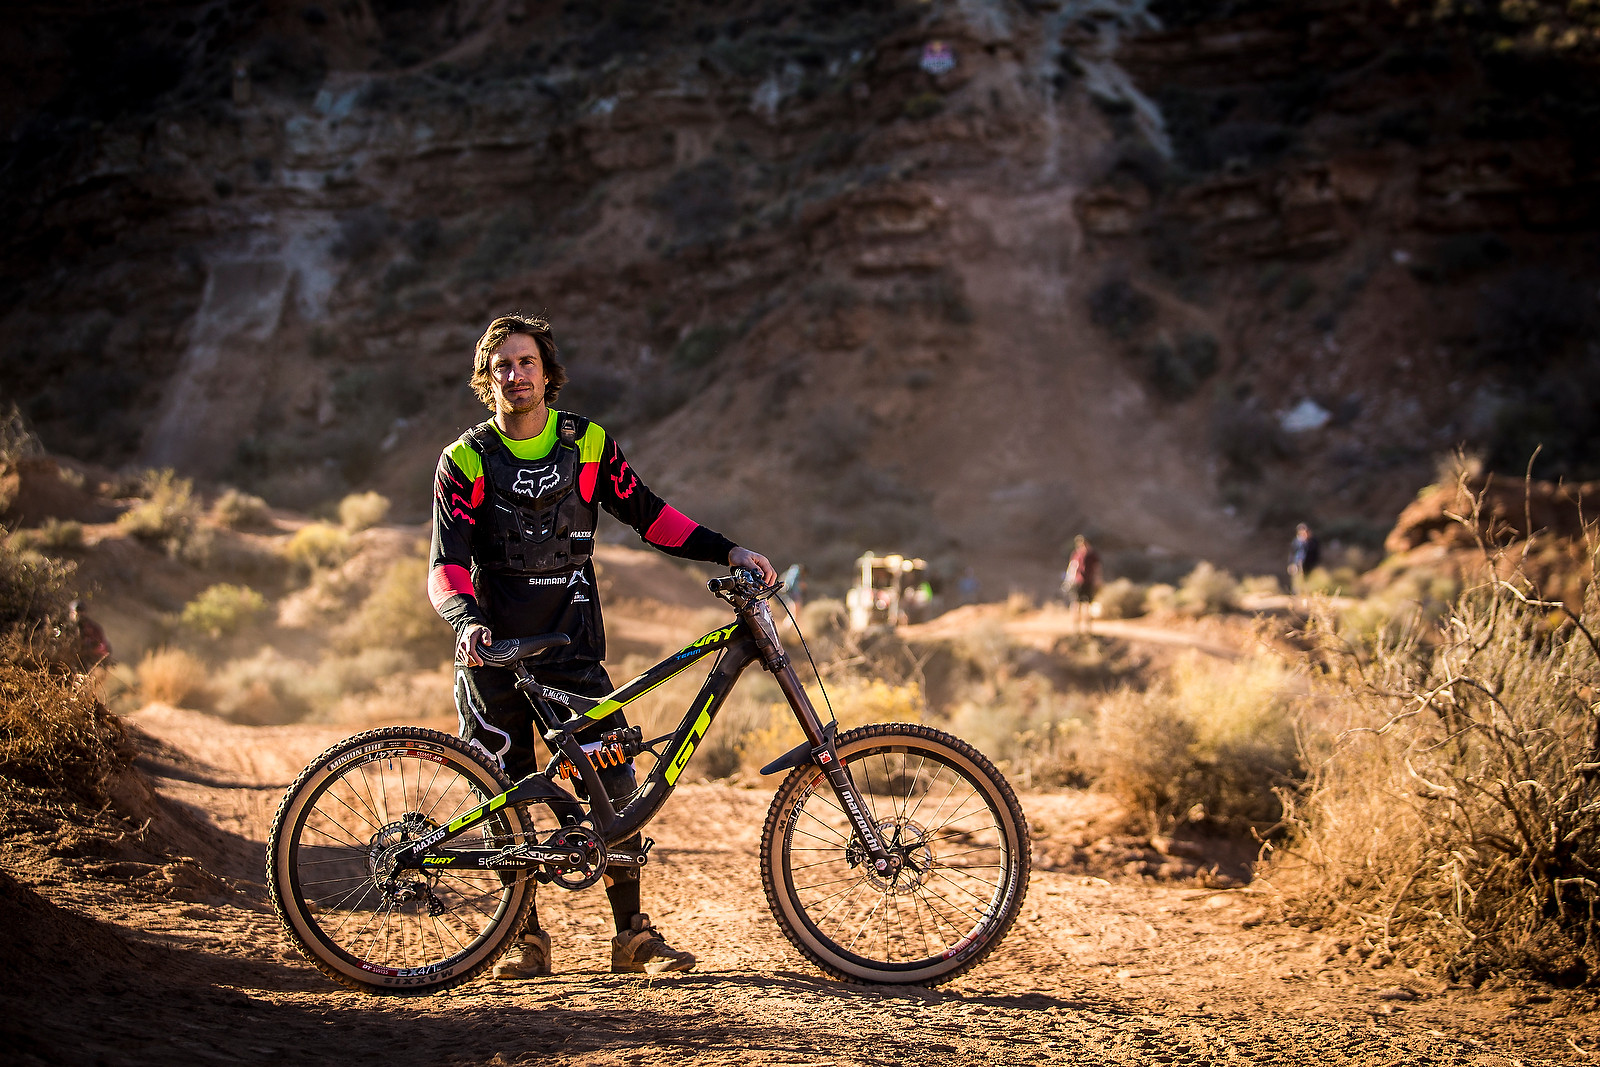 Tyler McCaul with his GT Fury at Rampage - Pro Bikes - Red Bull Rampage - Mountain Biking Pictures - Vital MTB